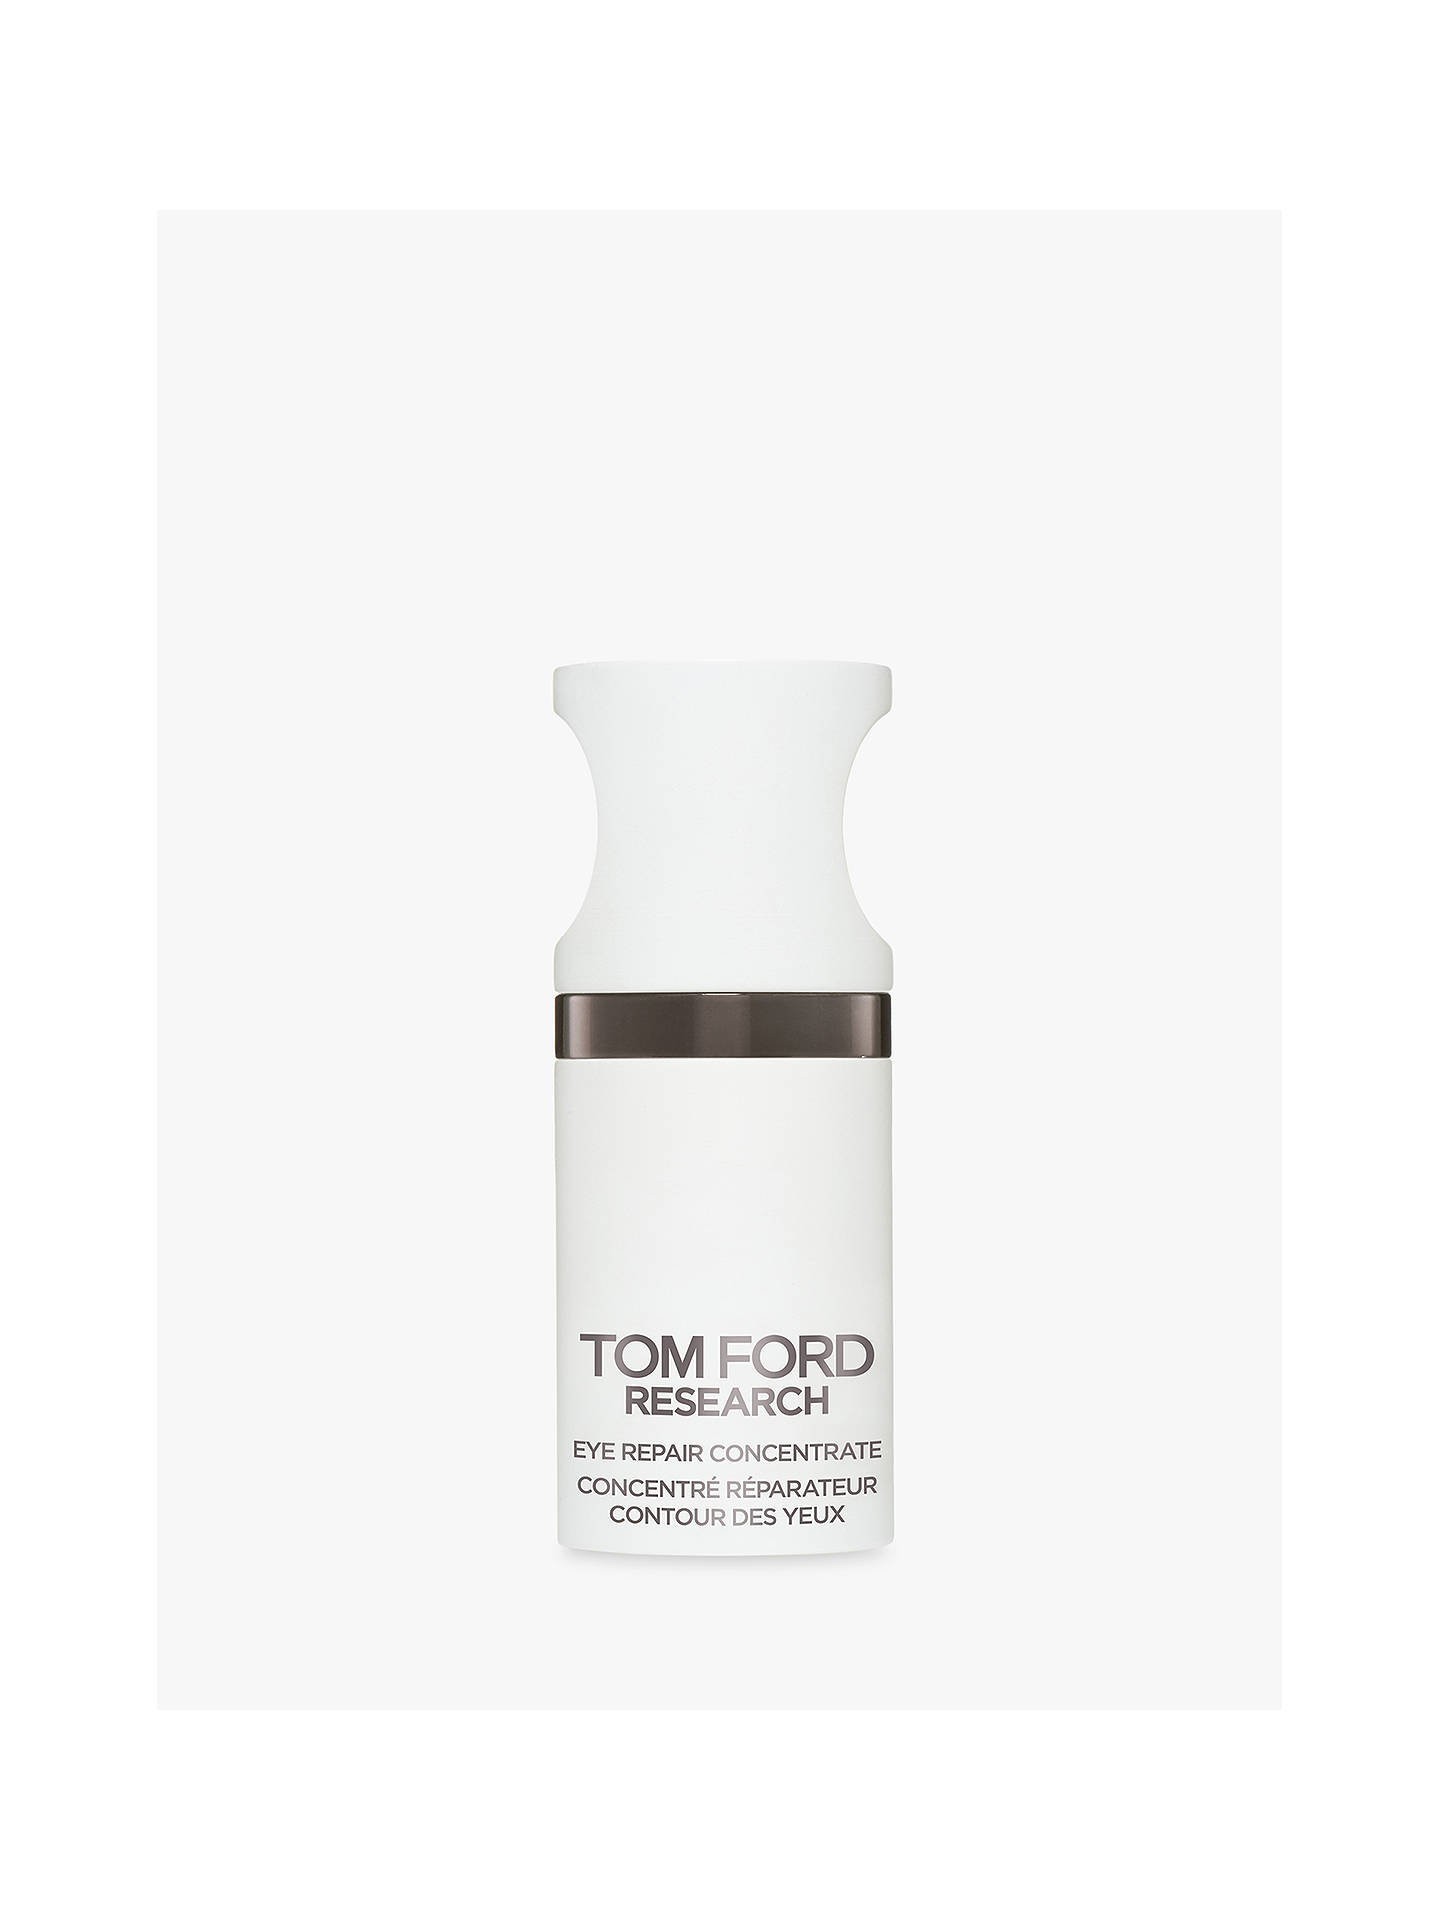 Buy TOM FORD Research Eye Repair Concentrate, 15ml Online at johnlewis.com